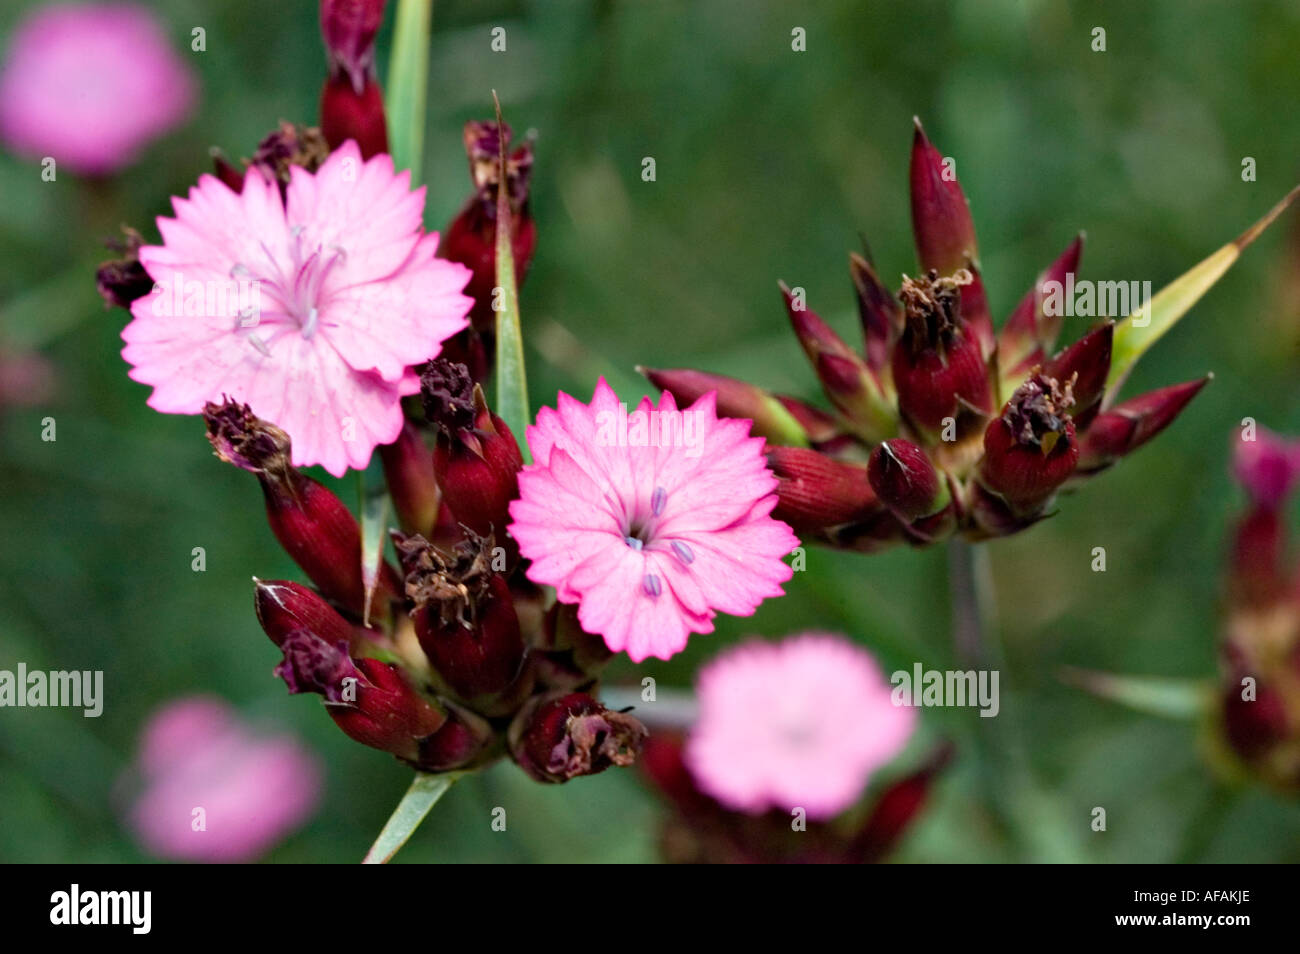 Giant Pink Flowers Caryophyllaceae Dianthus Stock Photos Giant